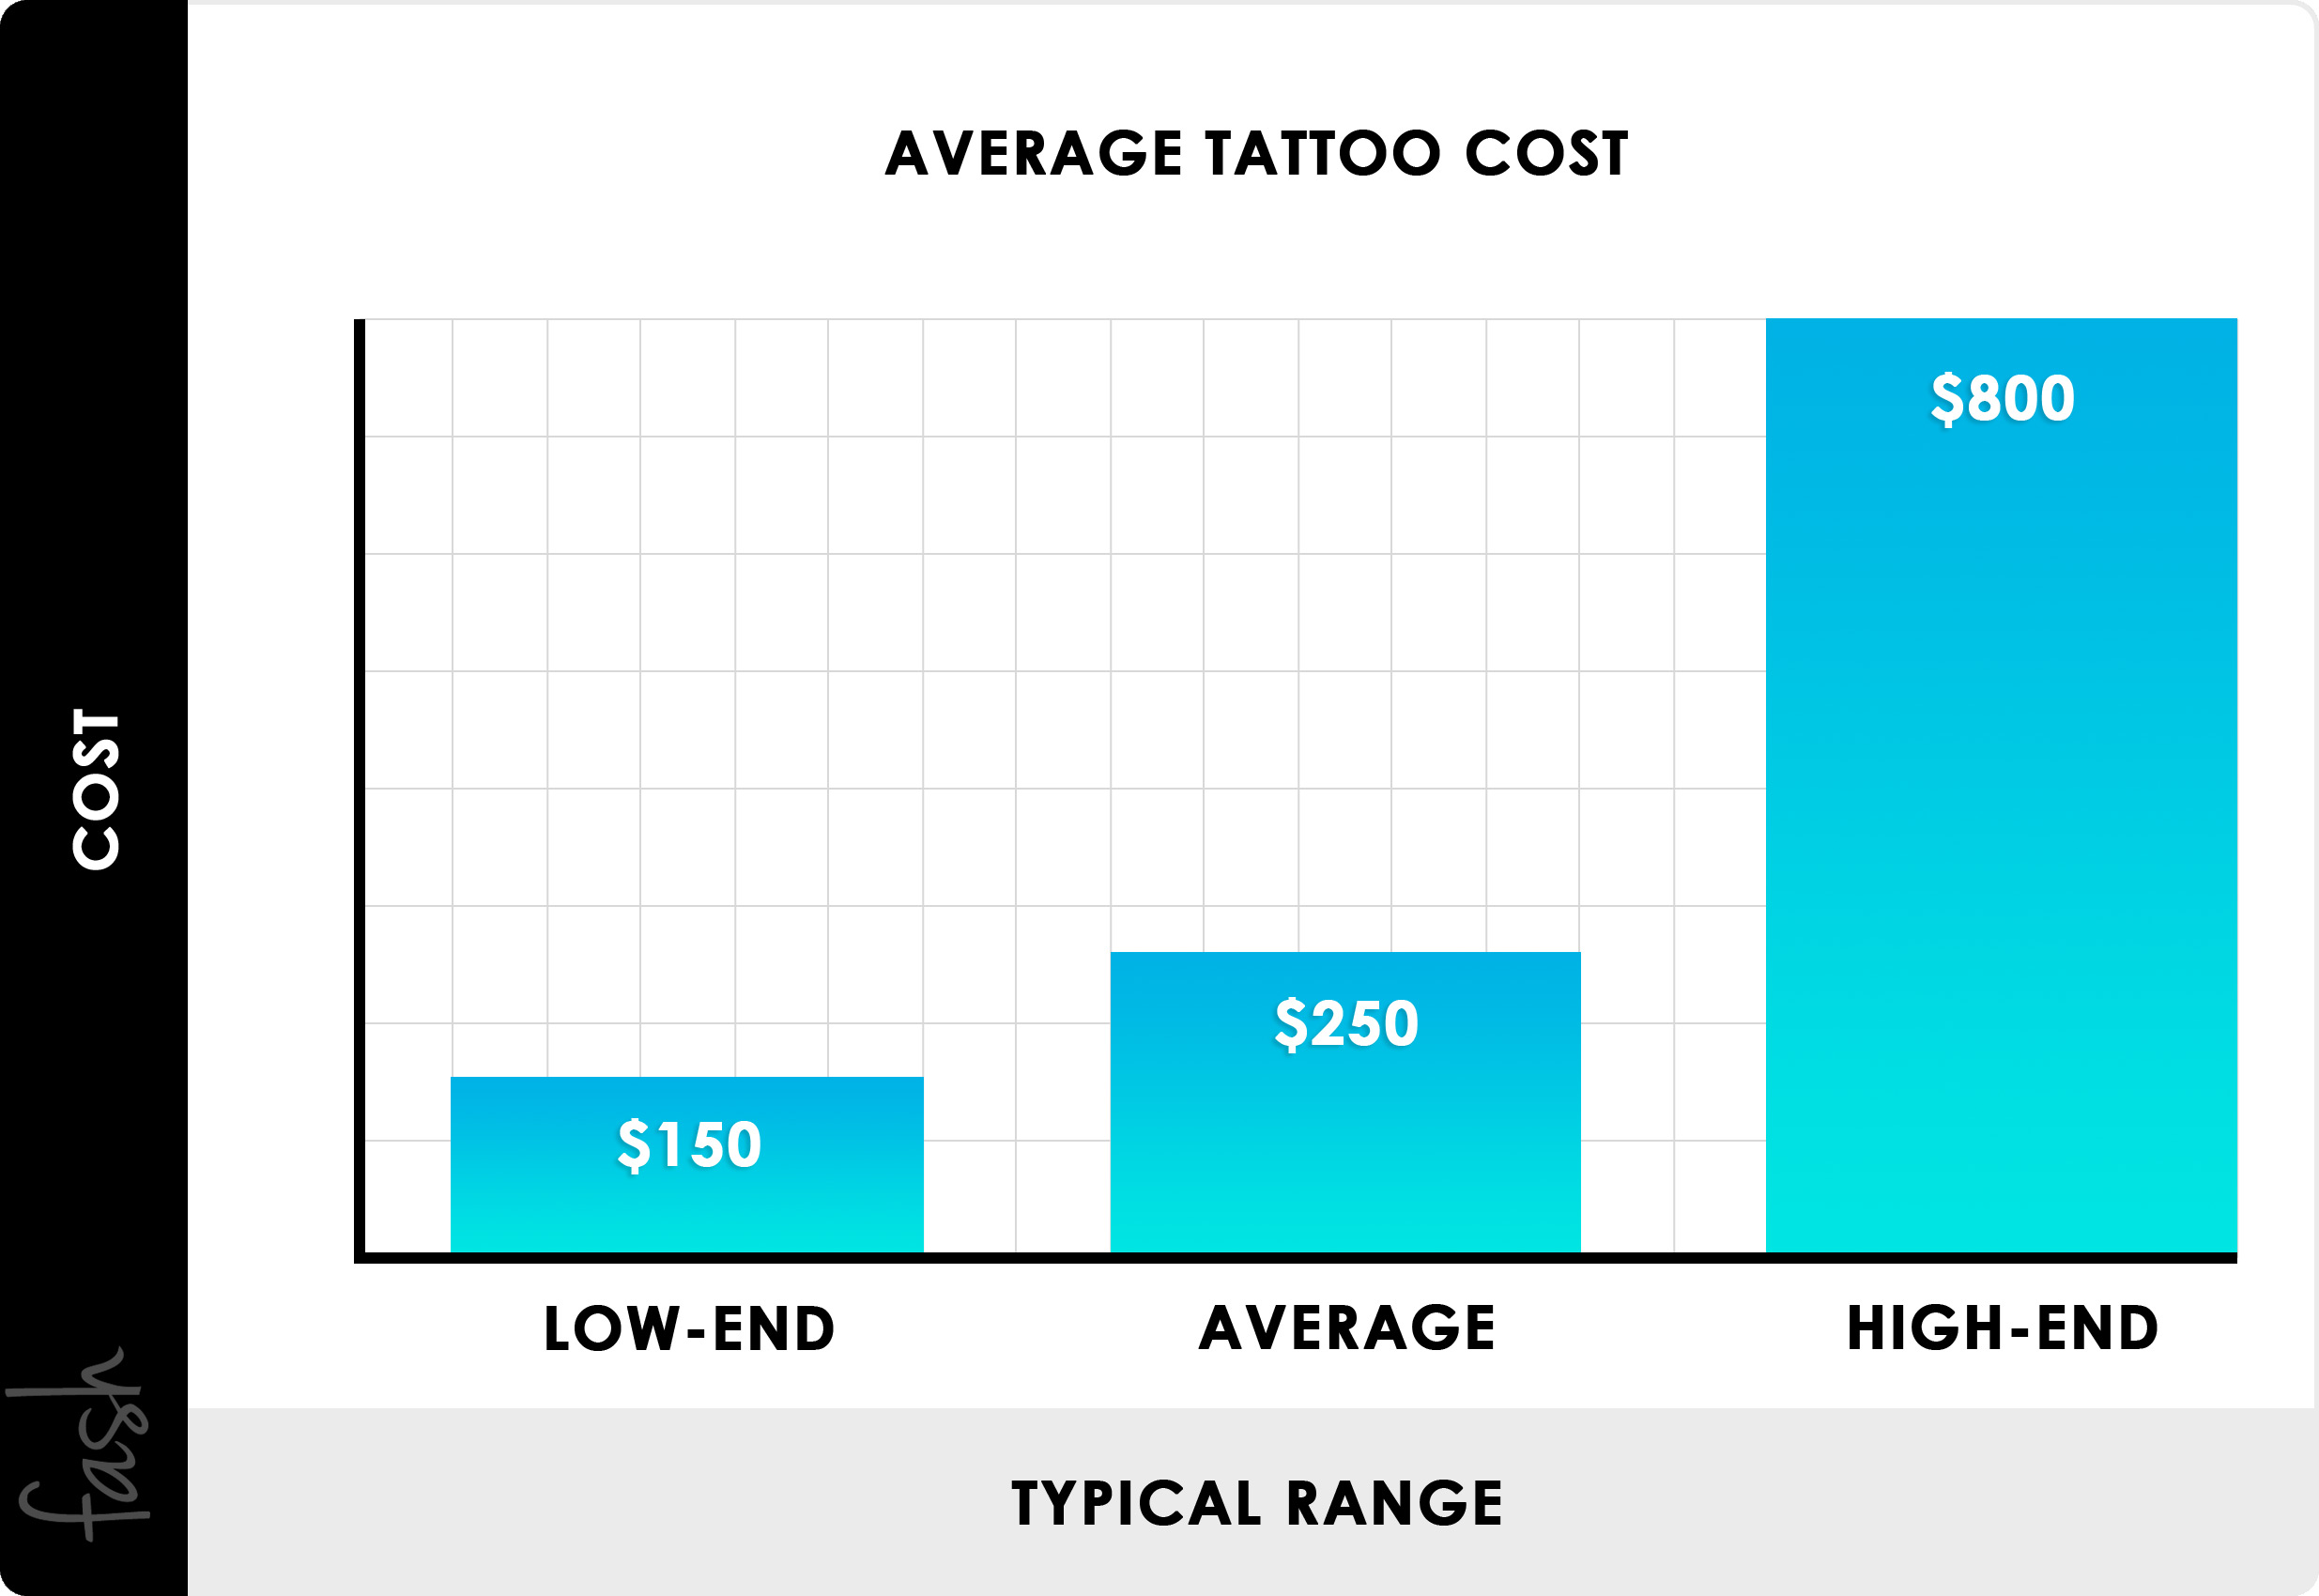 2019 Tattoo Prices Average Tattoo Costs By Size Examples Ideas And Designs